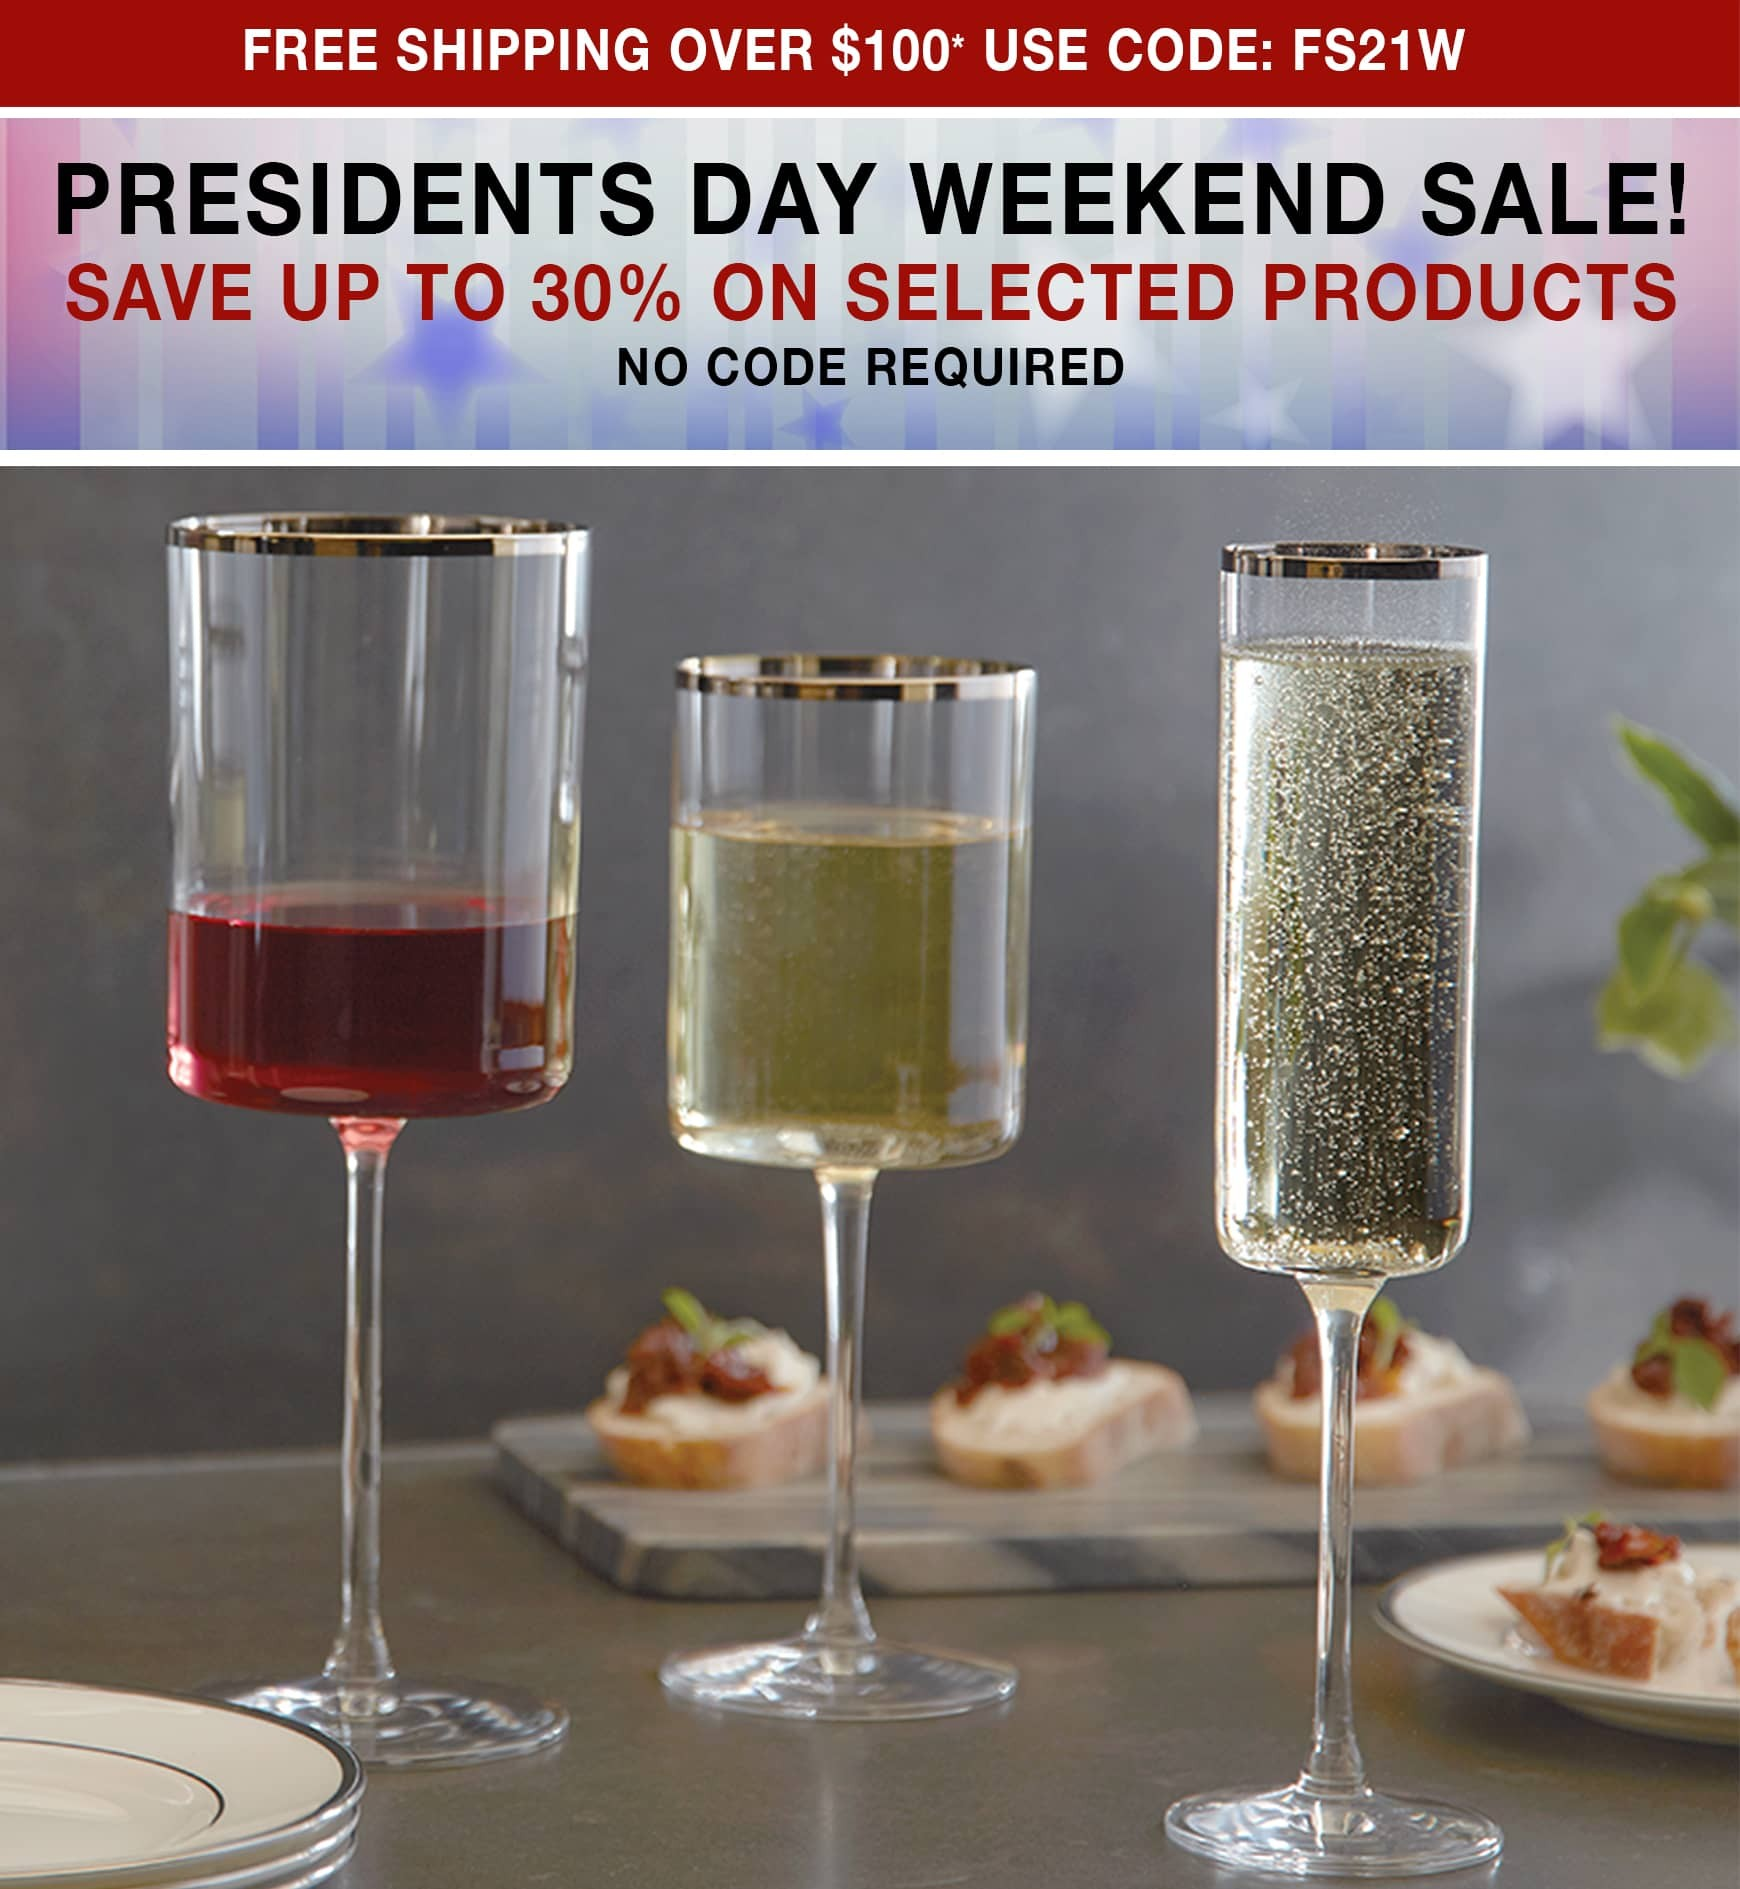 Presidents Day Weekend Sale! Save Up to 40% on Selected Products No Code Required - Free Shipping Over $100 use code FS21W